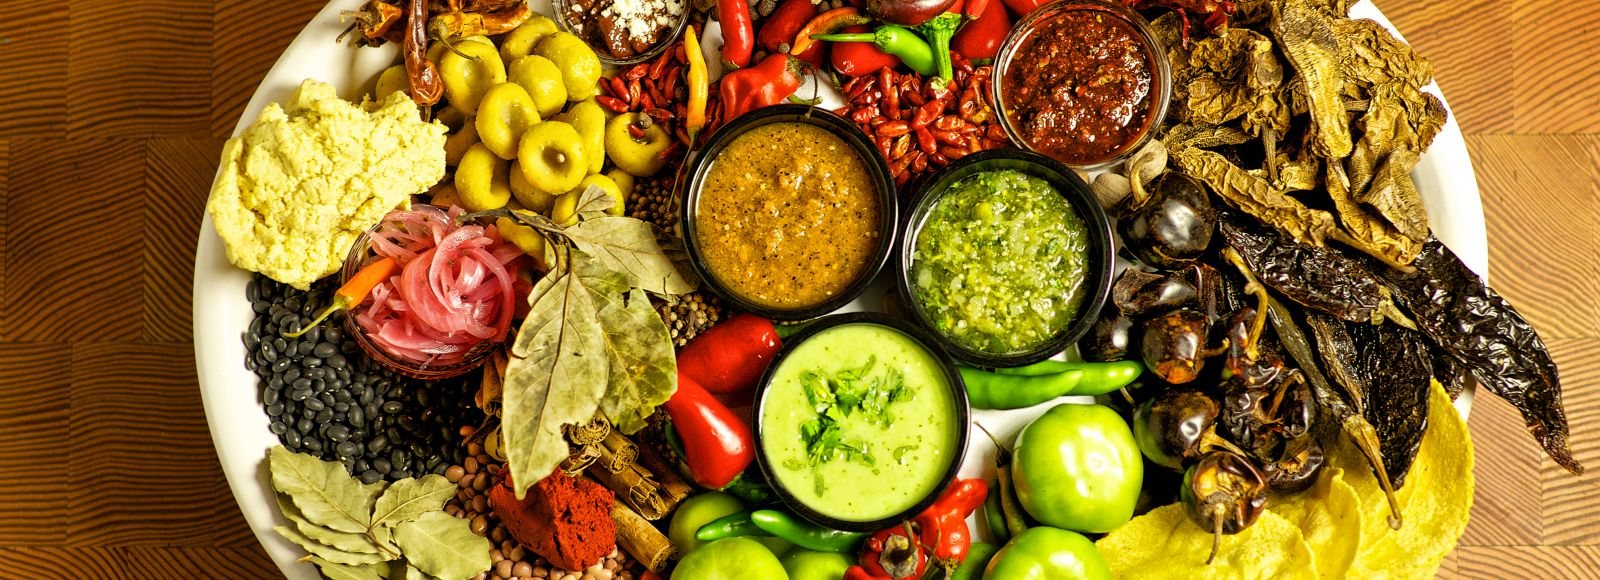 Colorful tray of food from Xico